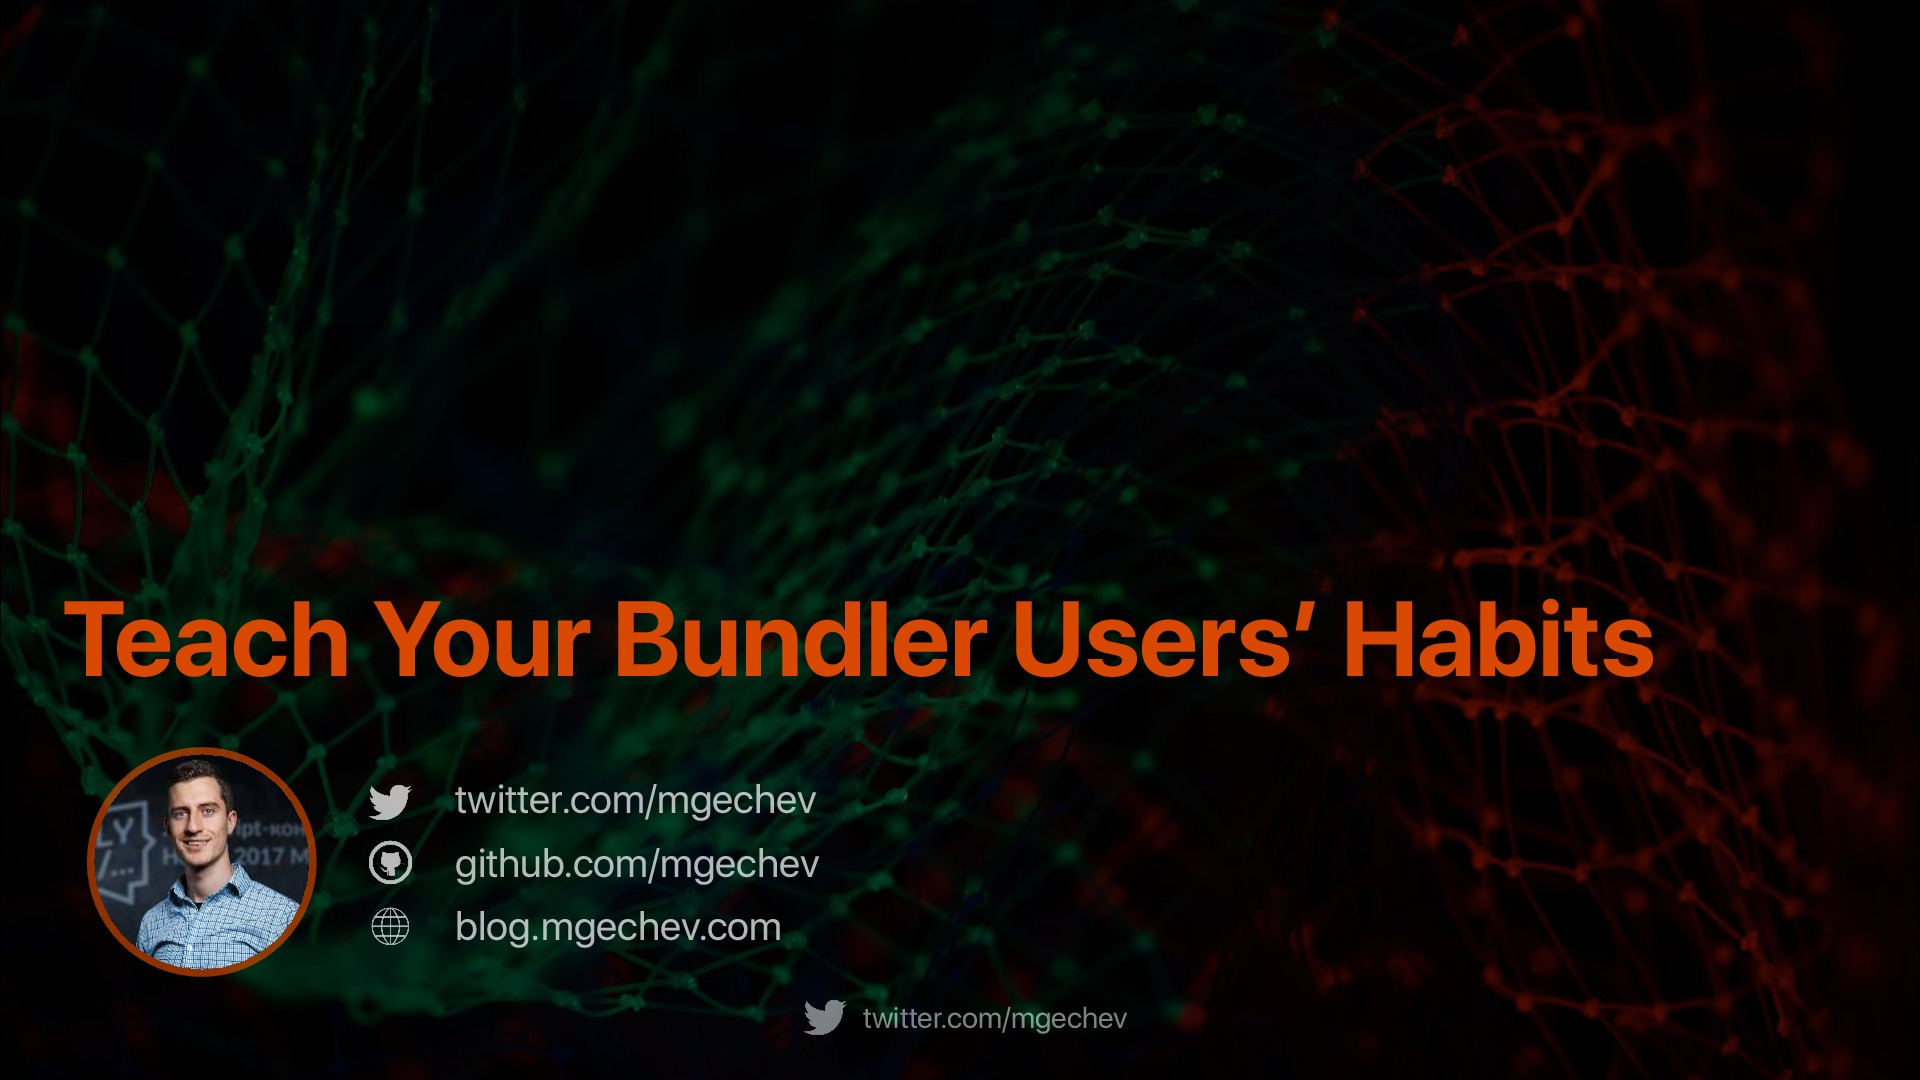 Teach Your Bundler Users' Habits